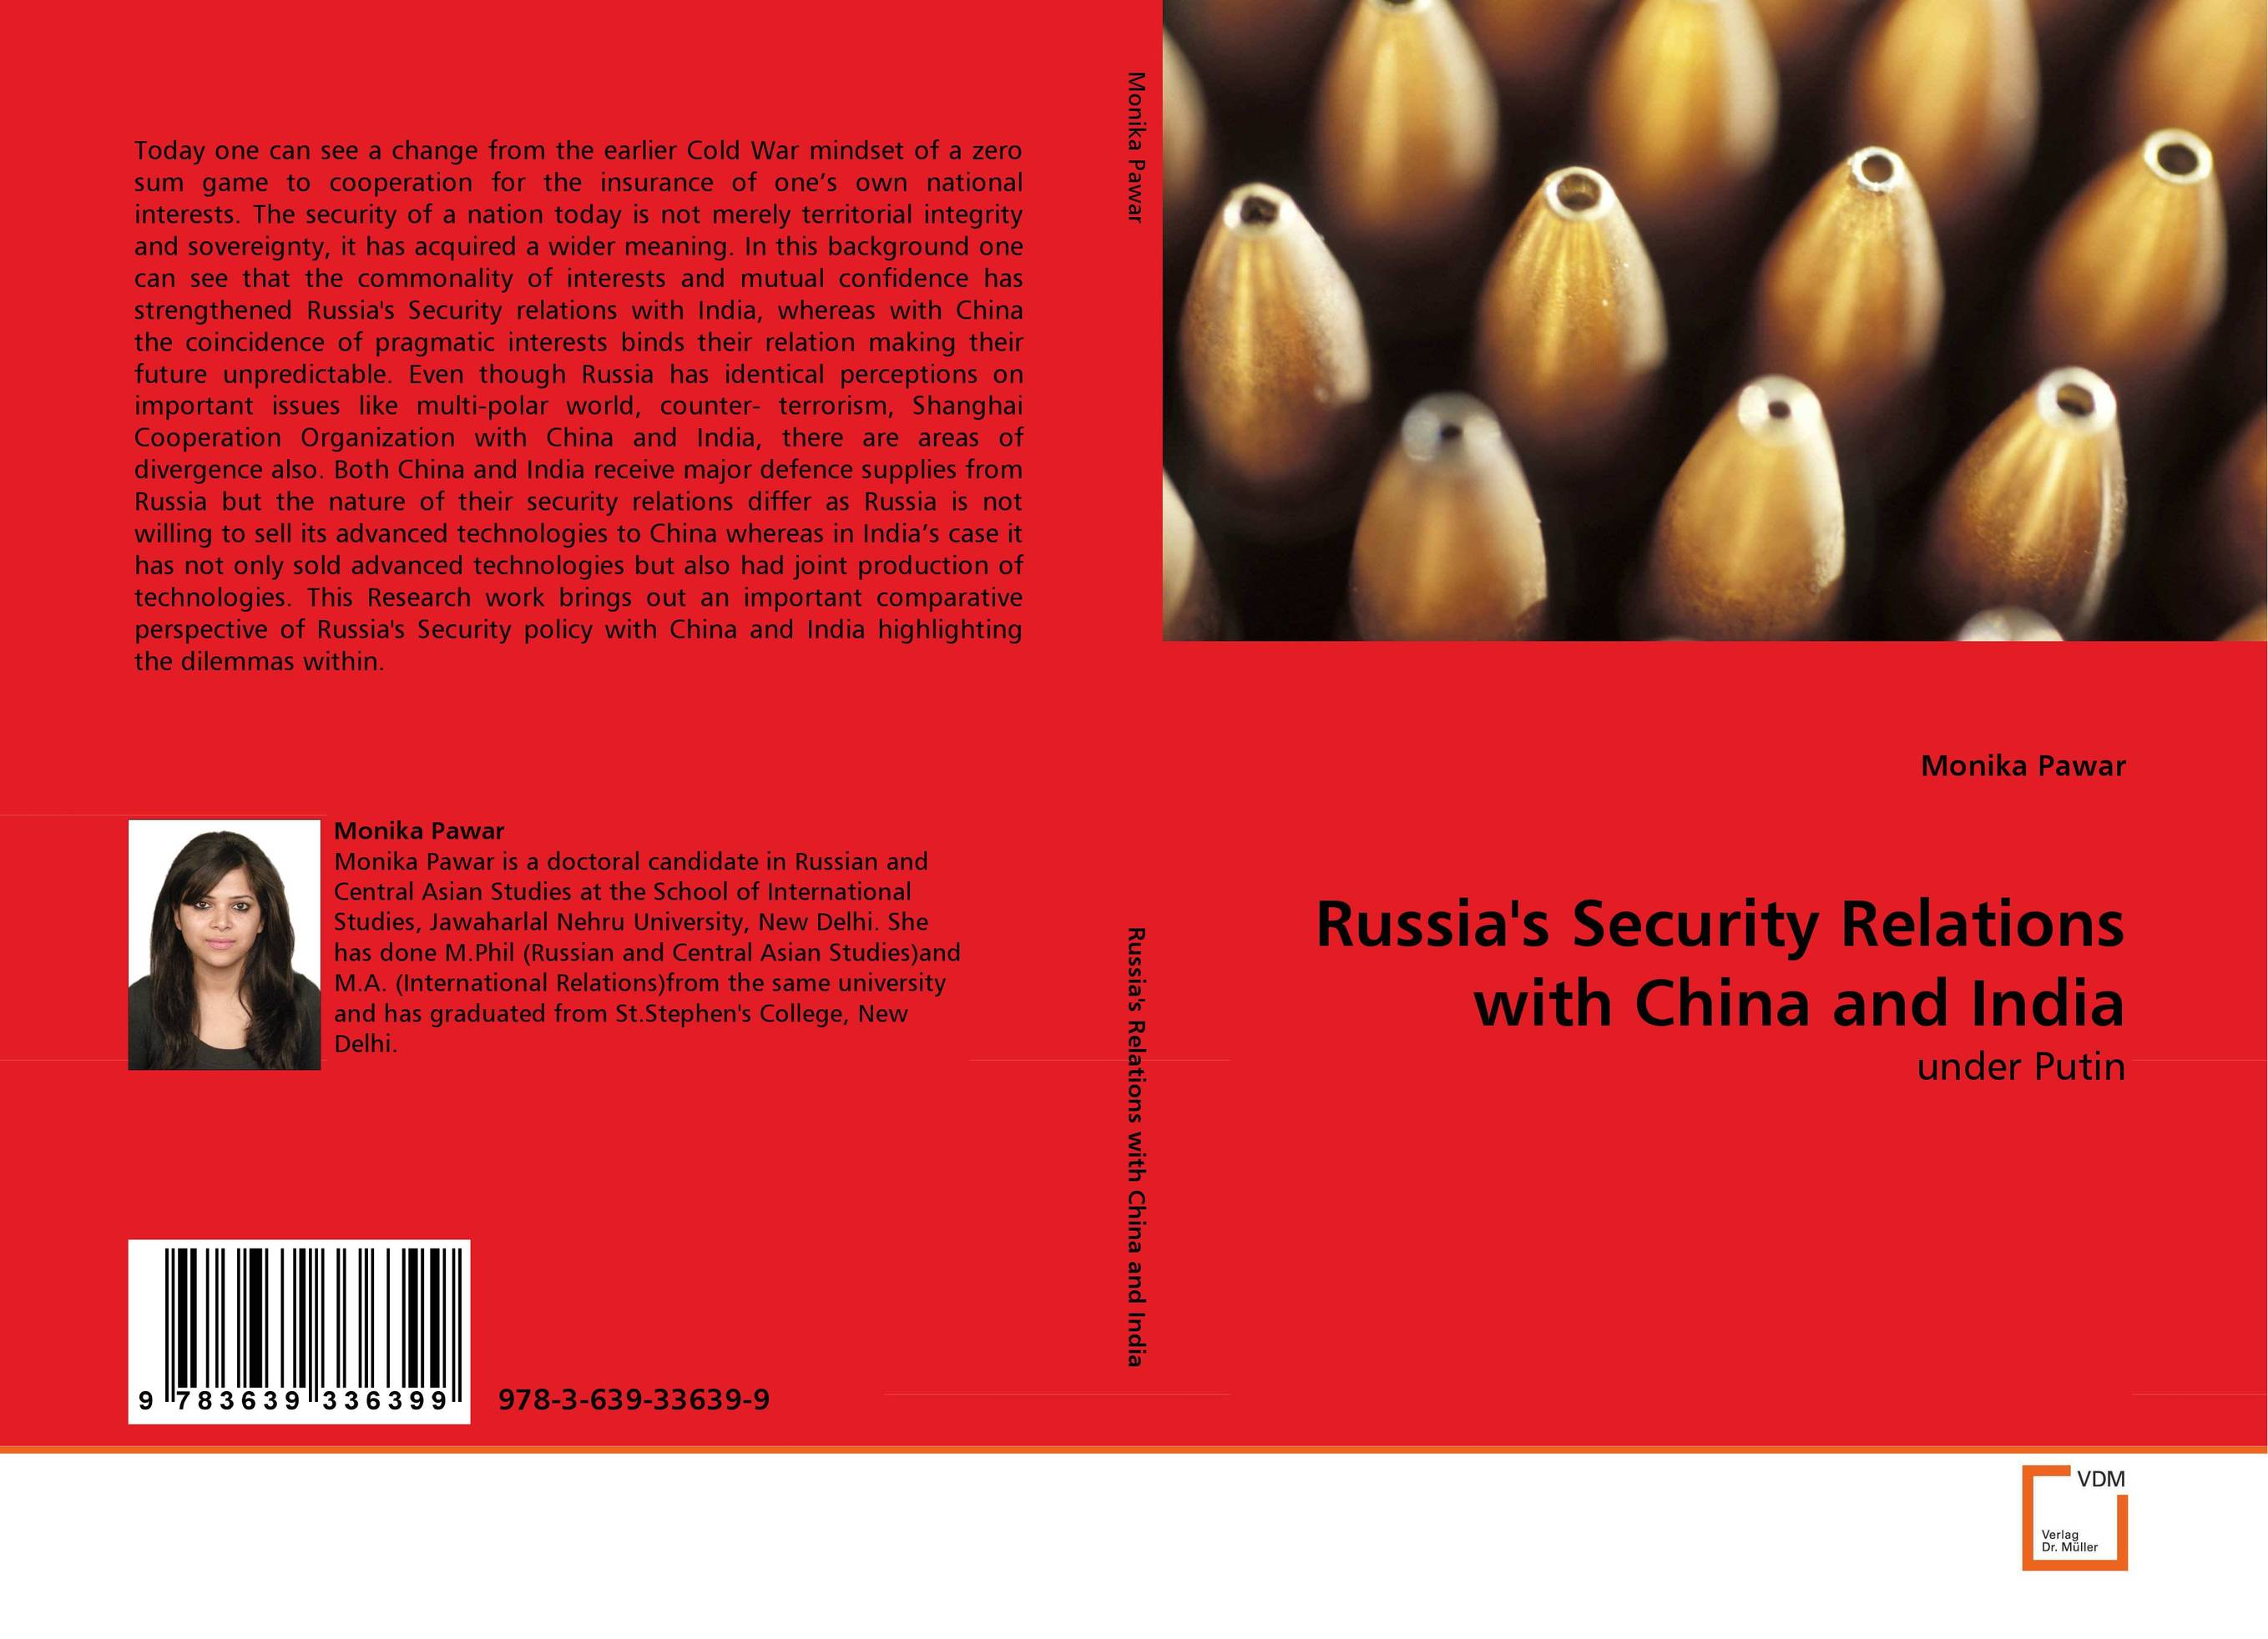 Russia''s Security Relations with China and India neris thomas india knight neris and india s idiot proof diet 6 copy counter buy 5 get 1 free